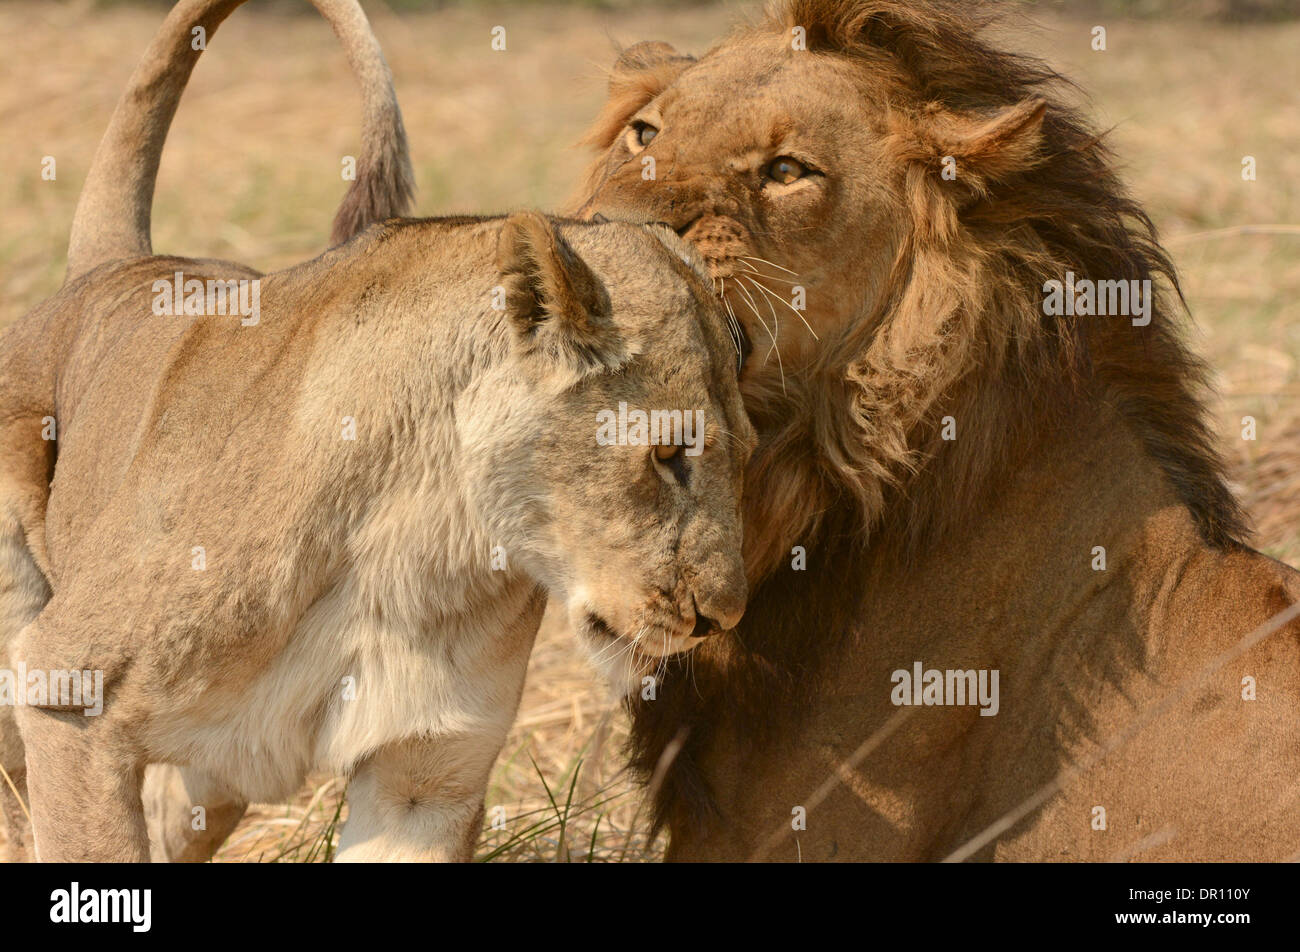 African Lion (Panthera leo) pair nuzzling each other prior to mating, Kafue National Park, Zambia, September - Stock Image